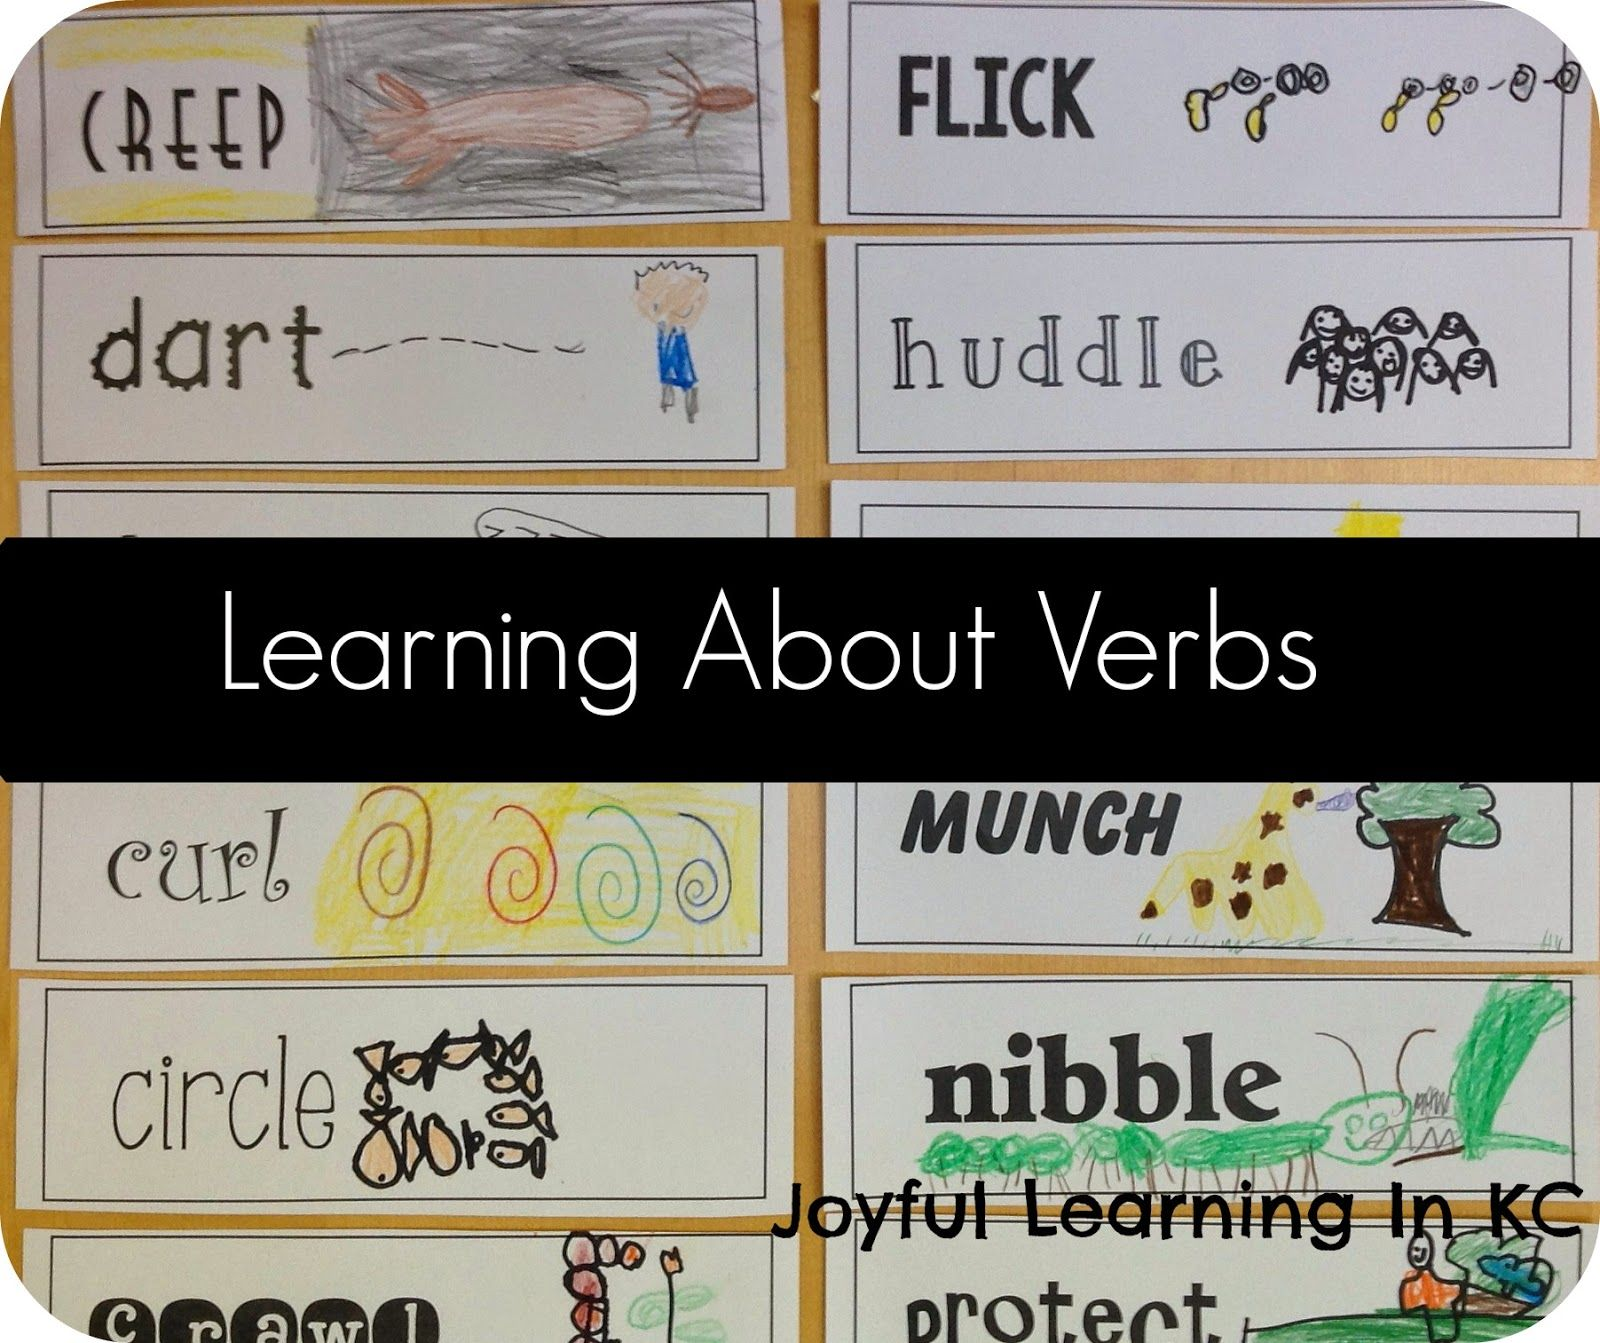 Vivid Verbs With Images